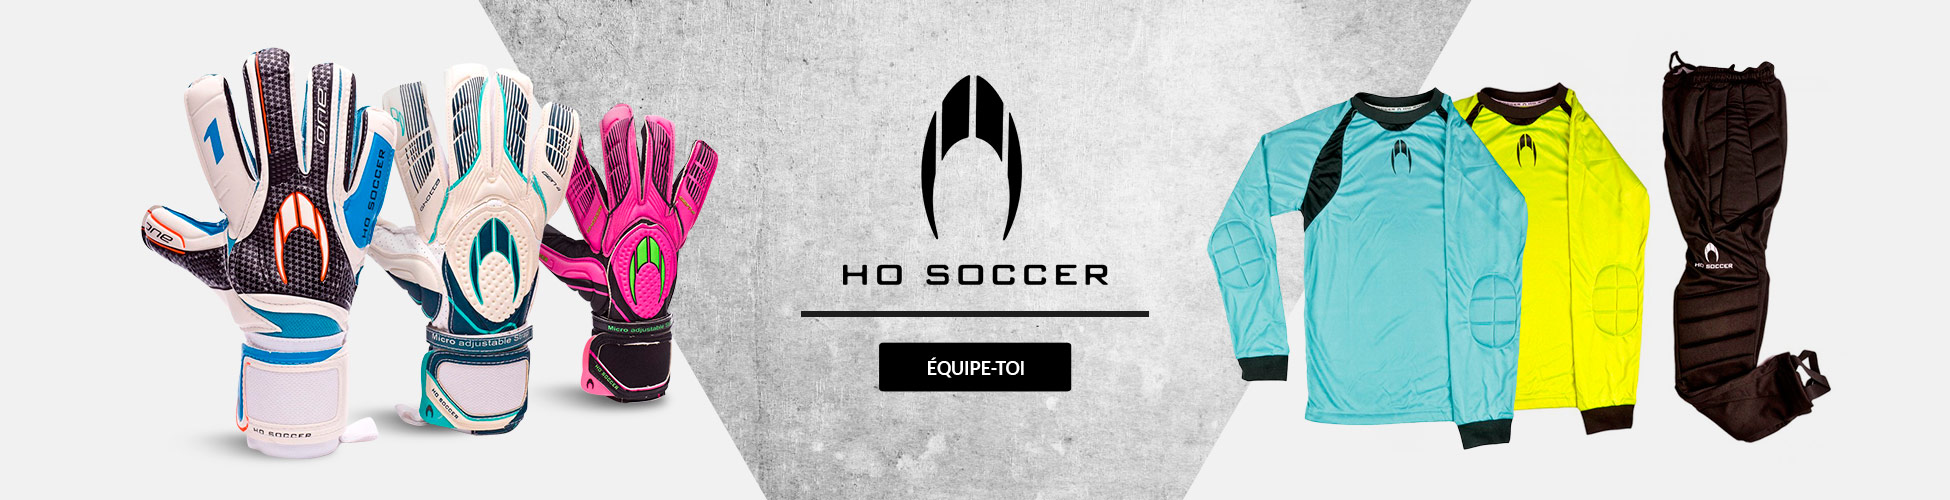 Equipate con HO Soccer FR